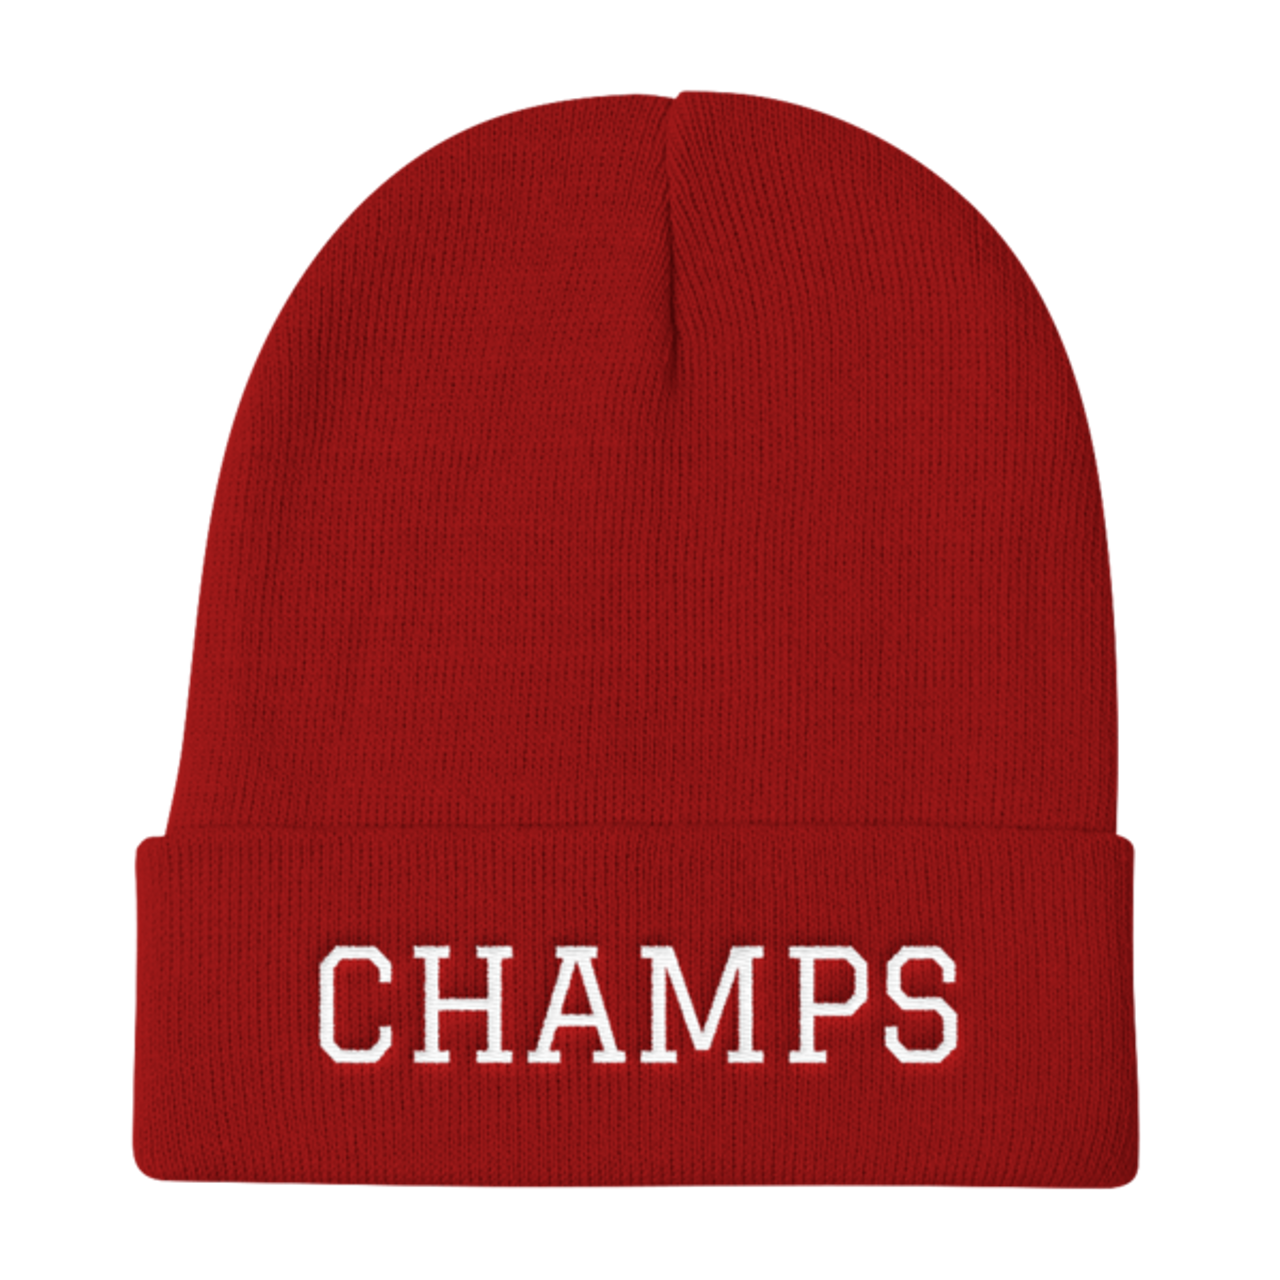 CHAMPS Embroidered Knit Beanie Red